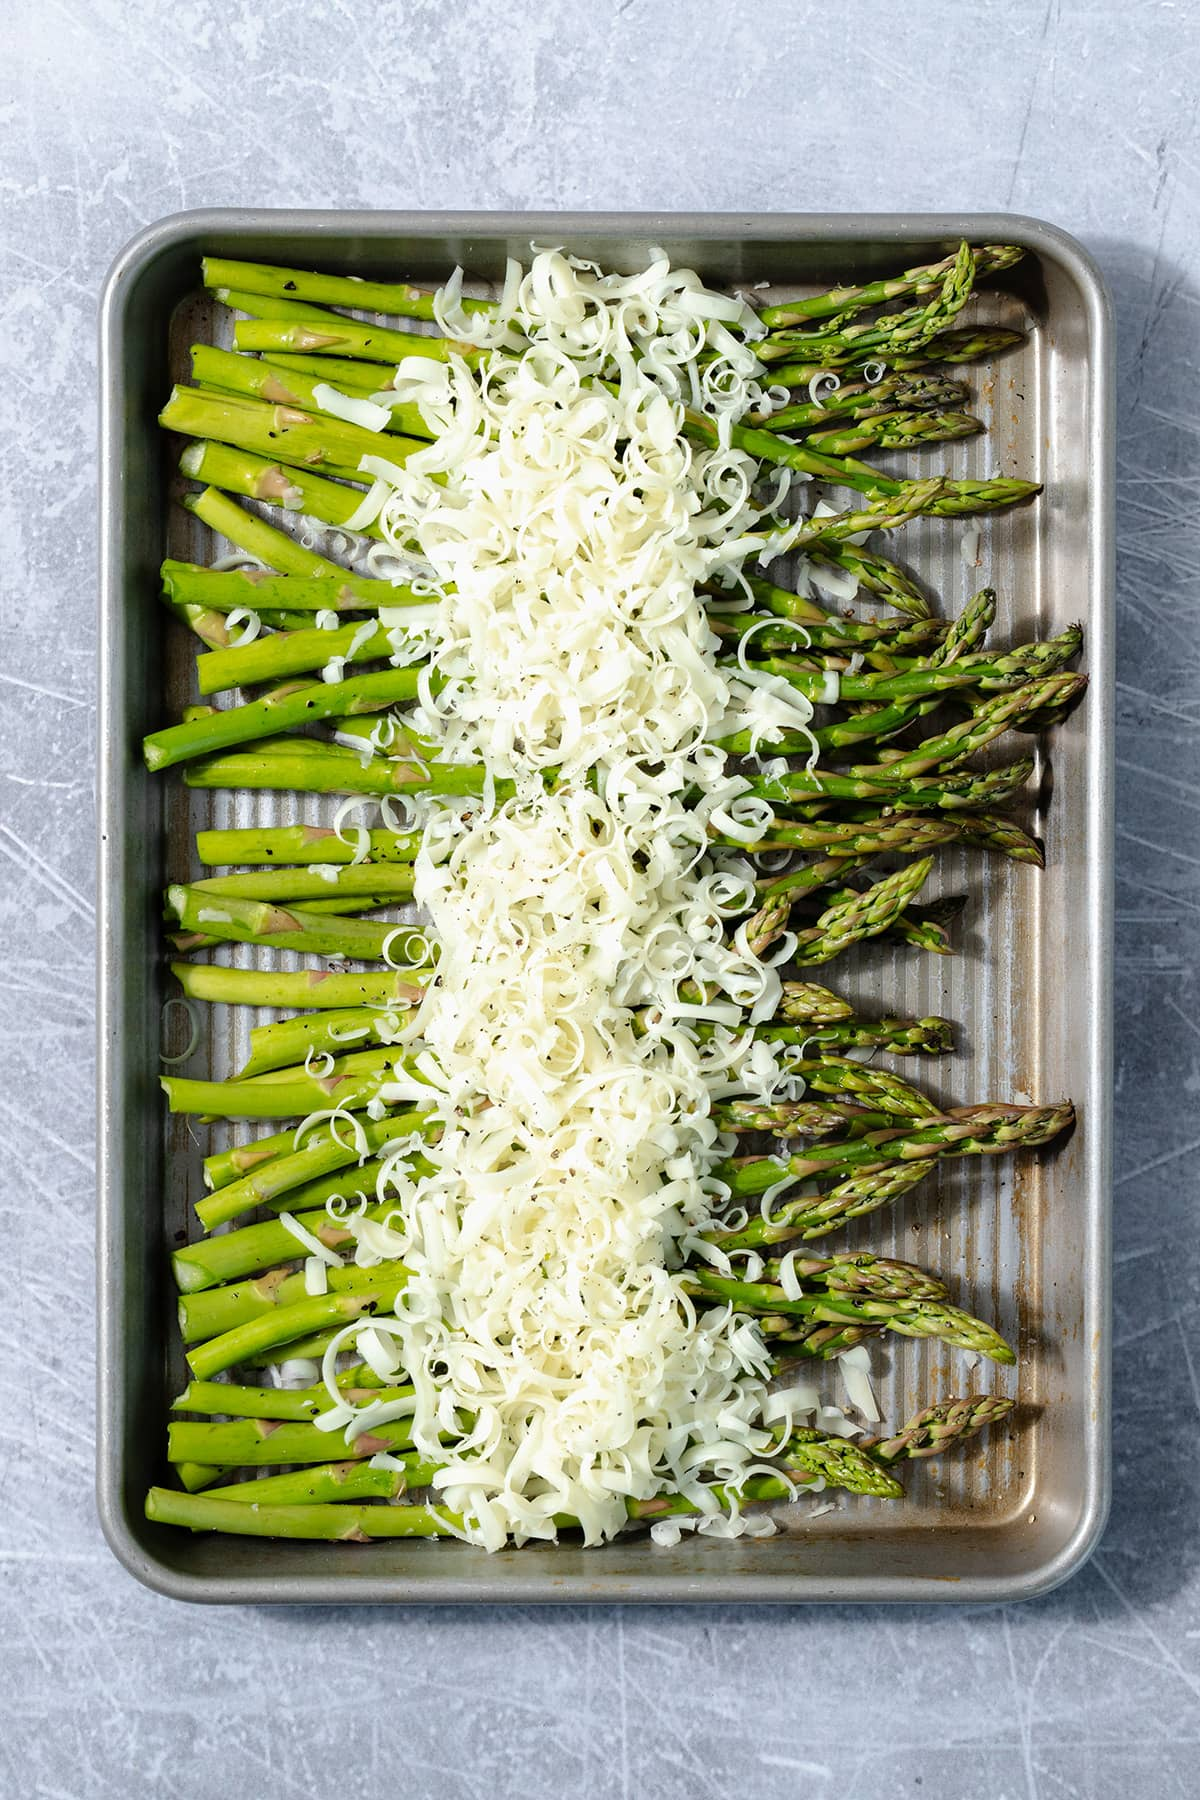 Fresh asparagus on a sheet pan sprinkled with grated cheese. Pan is on a scratched metal surface.